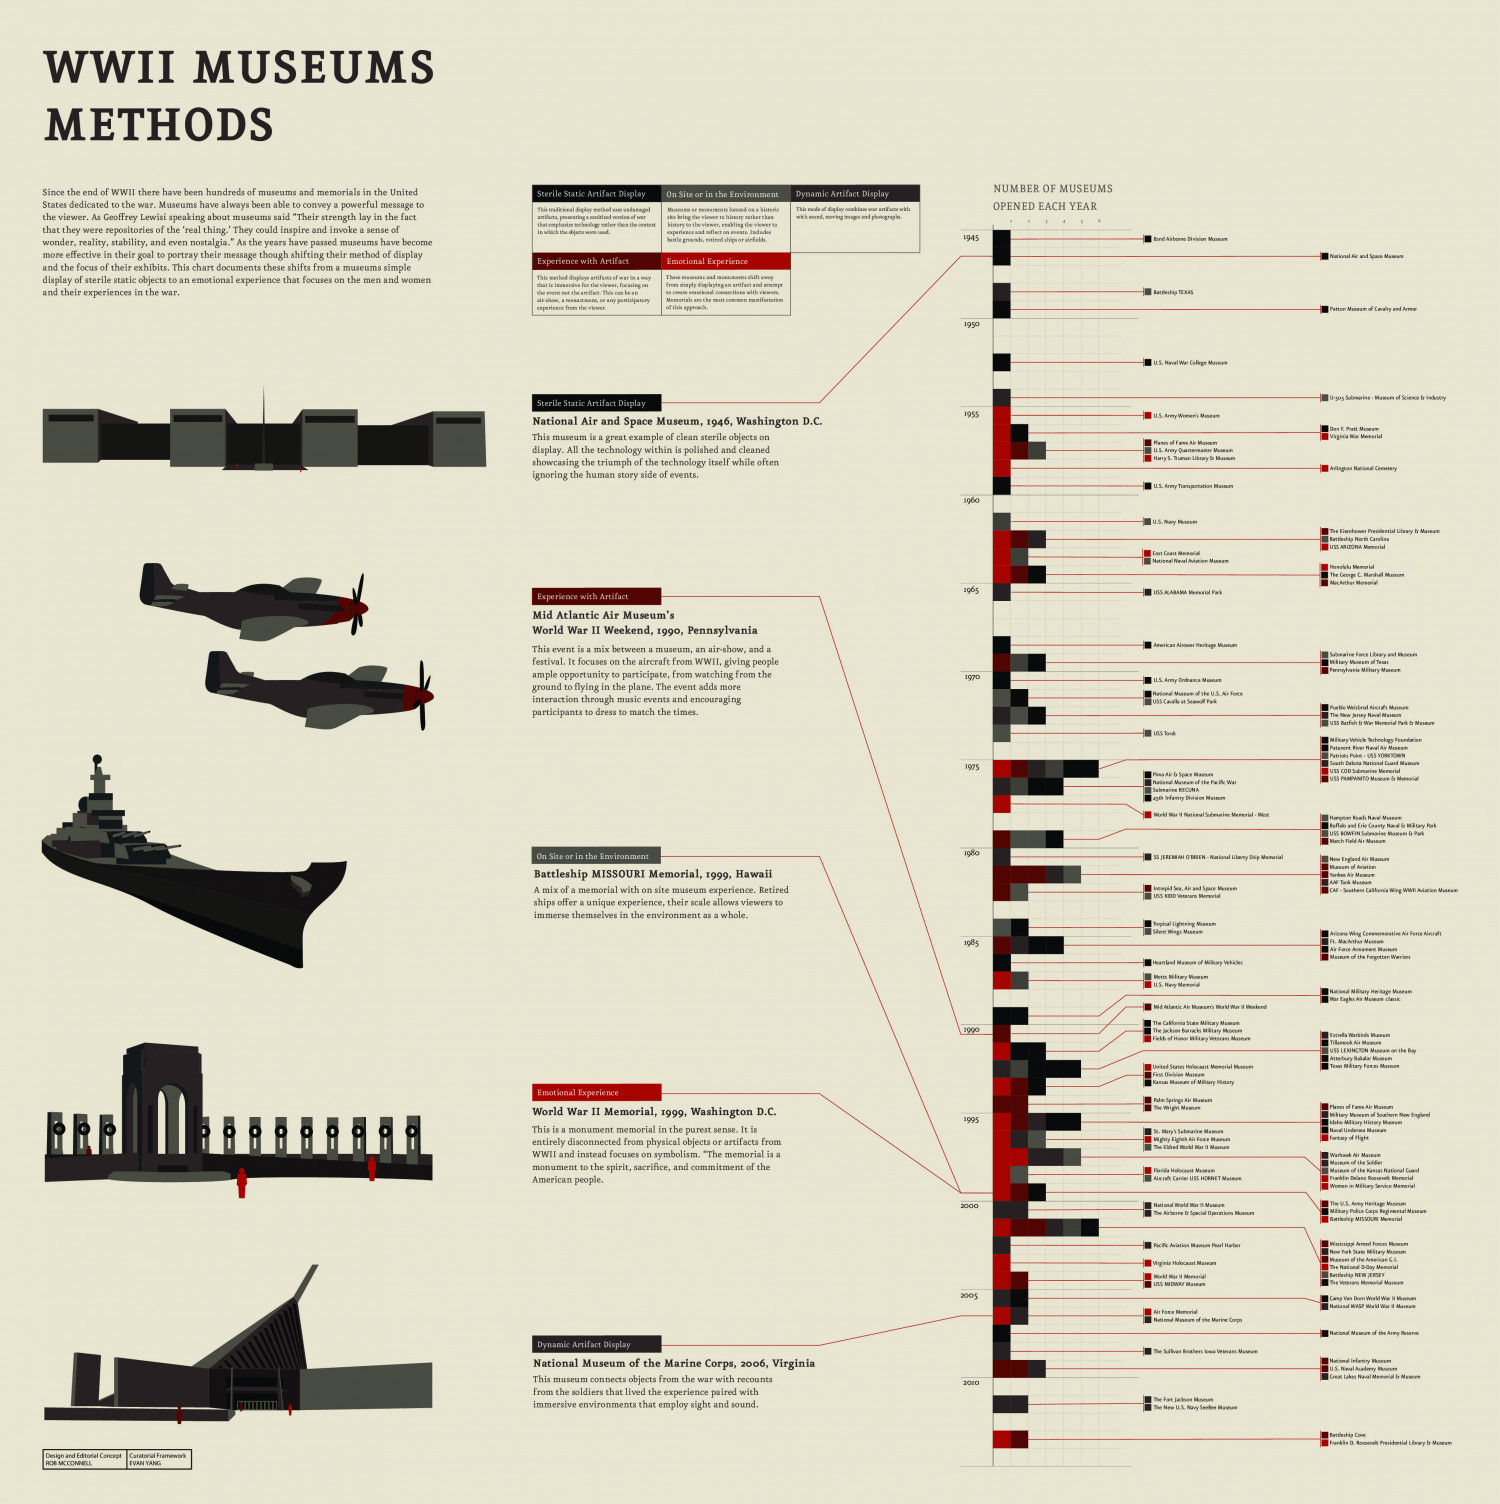 WWII Museums Methods Infographic